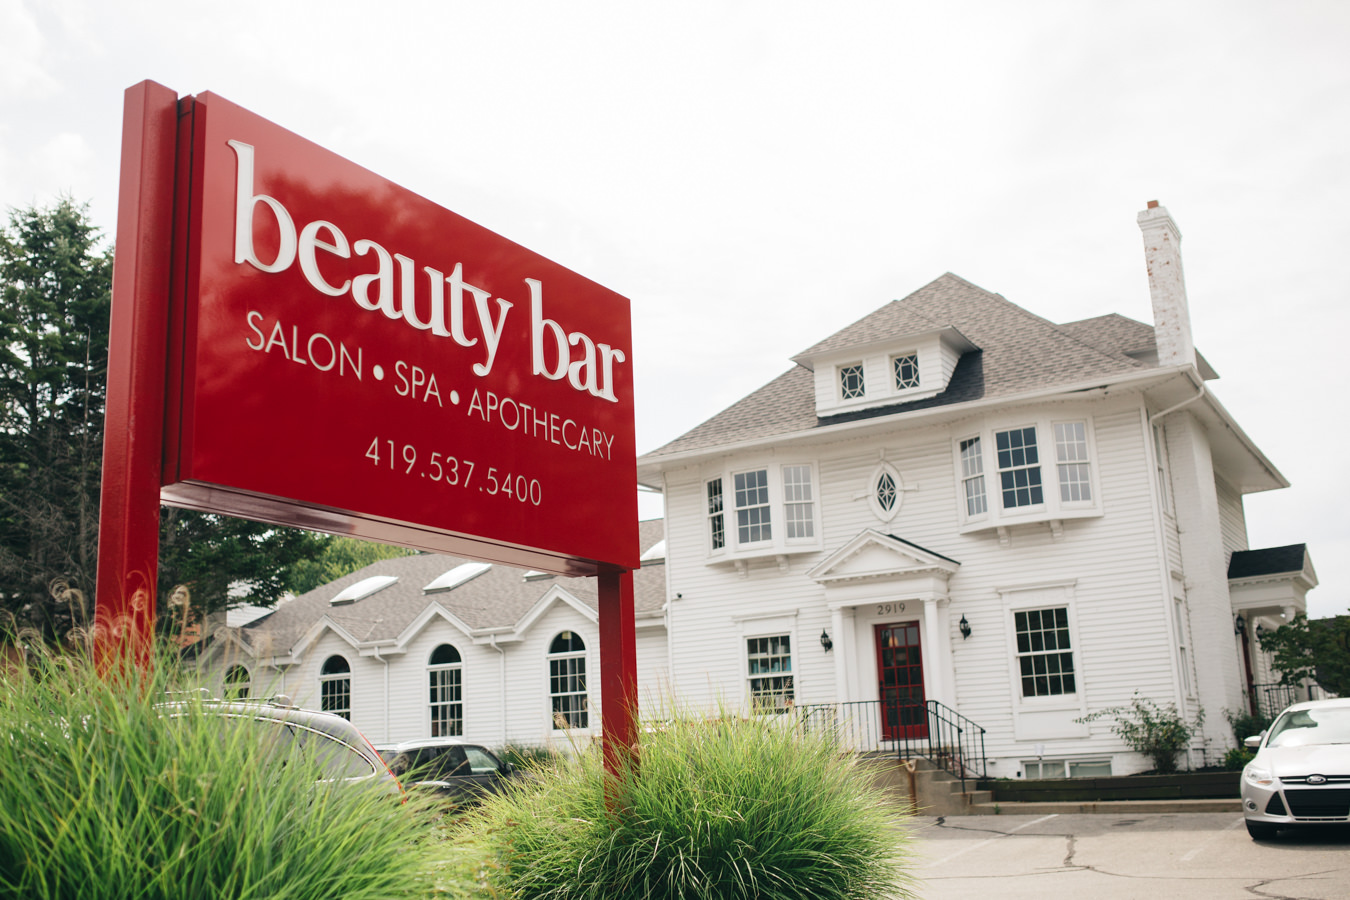 The Beauty Bar Salon & Spa in Toledo, Ohio.